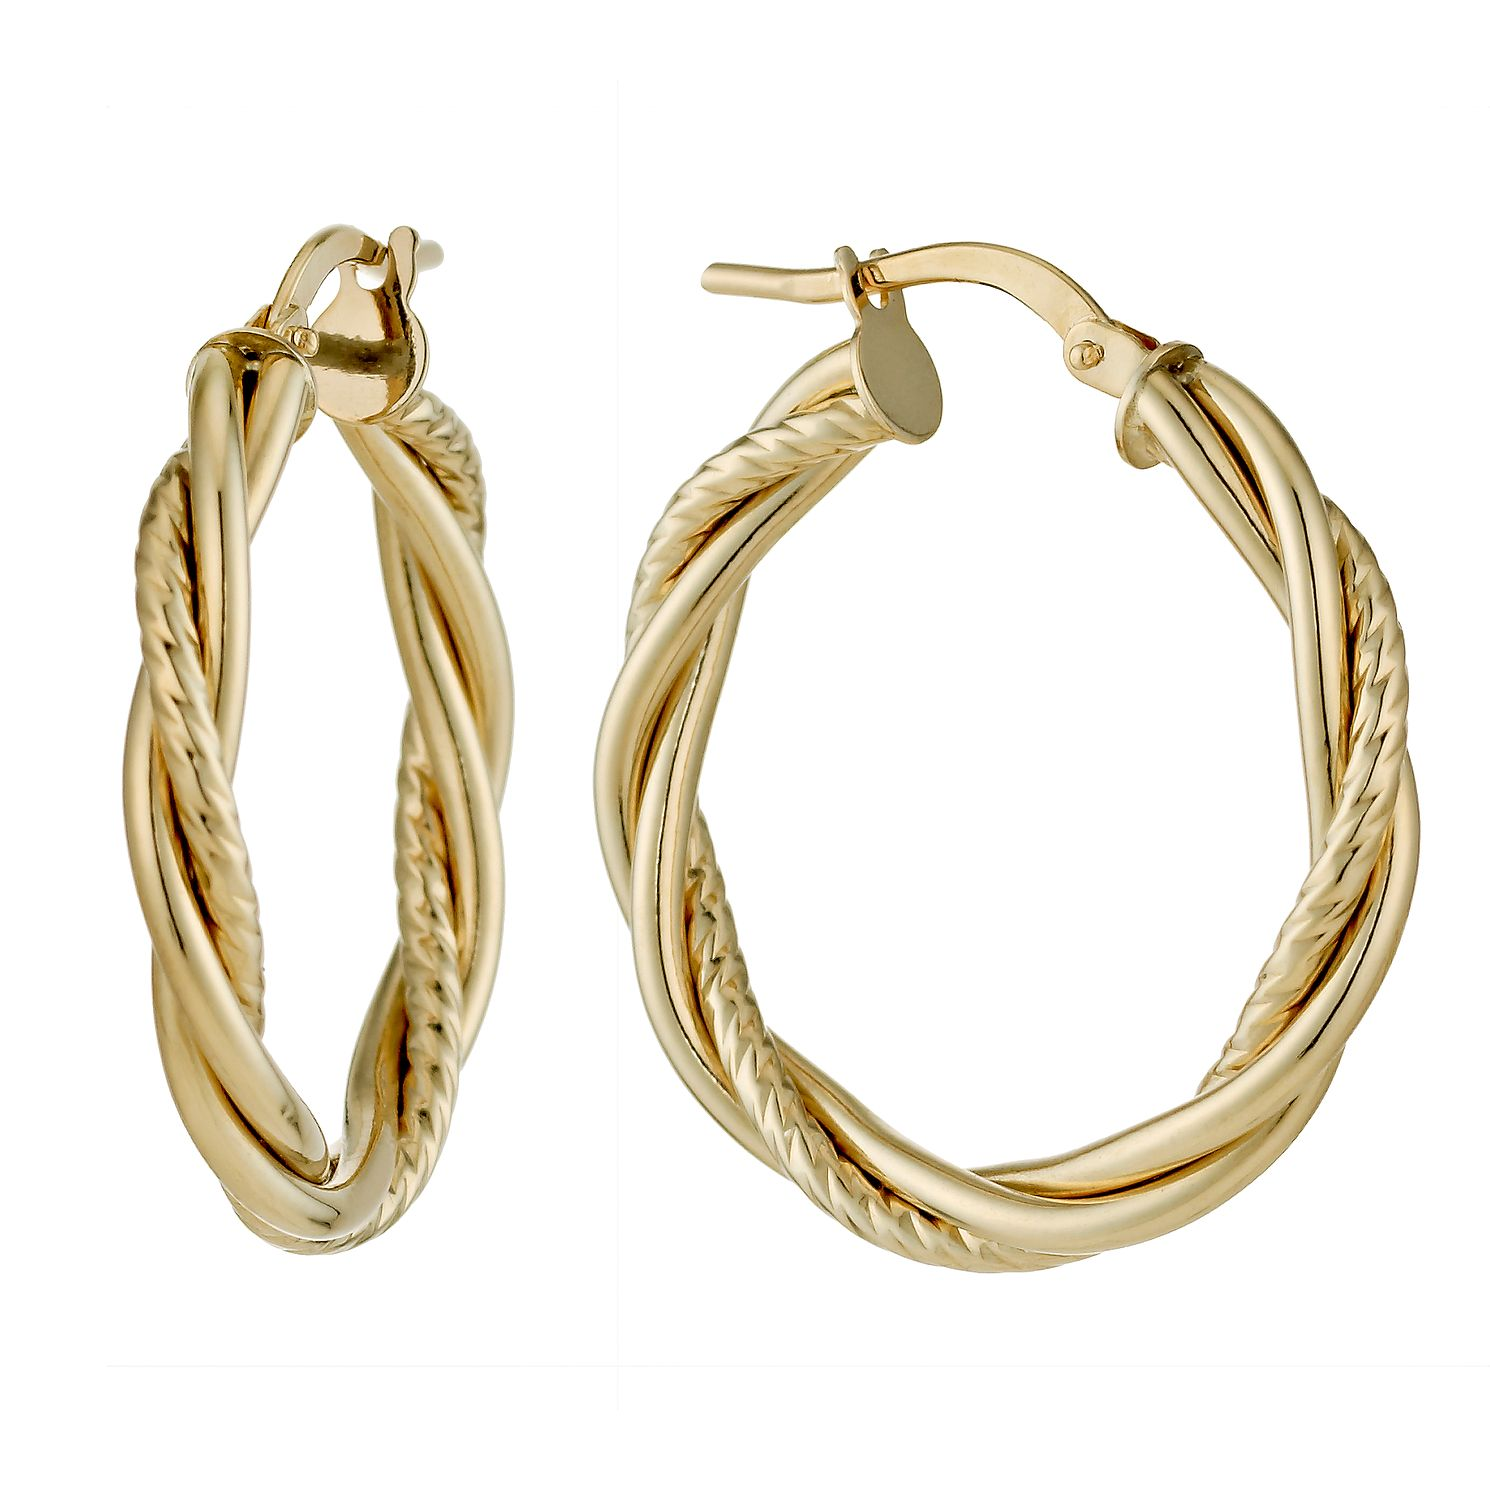 9ct Yellow Gold 20mm Twist Hoop Earrings - Product number 1326171